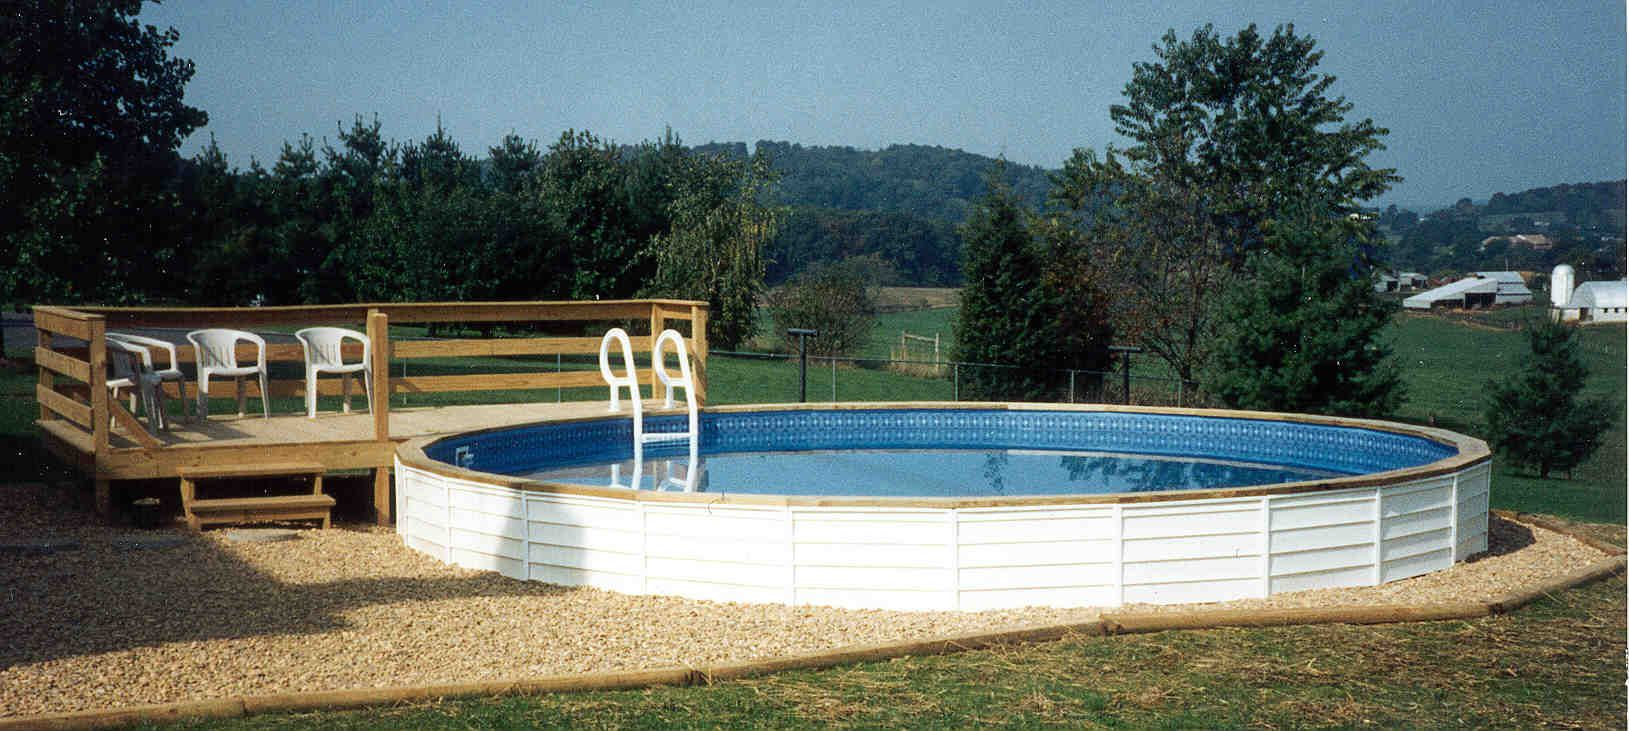 Ways To Camouflage An Above Ground Pool Above Ground Swimming Pools Target Above Ground Pool Swimming Pools Above Ground Swimming Pools Outdoor Improvements